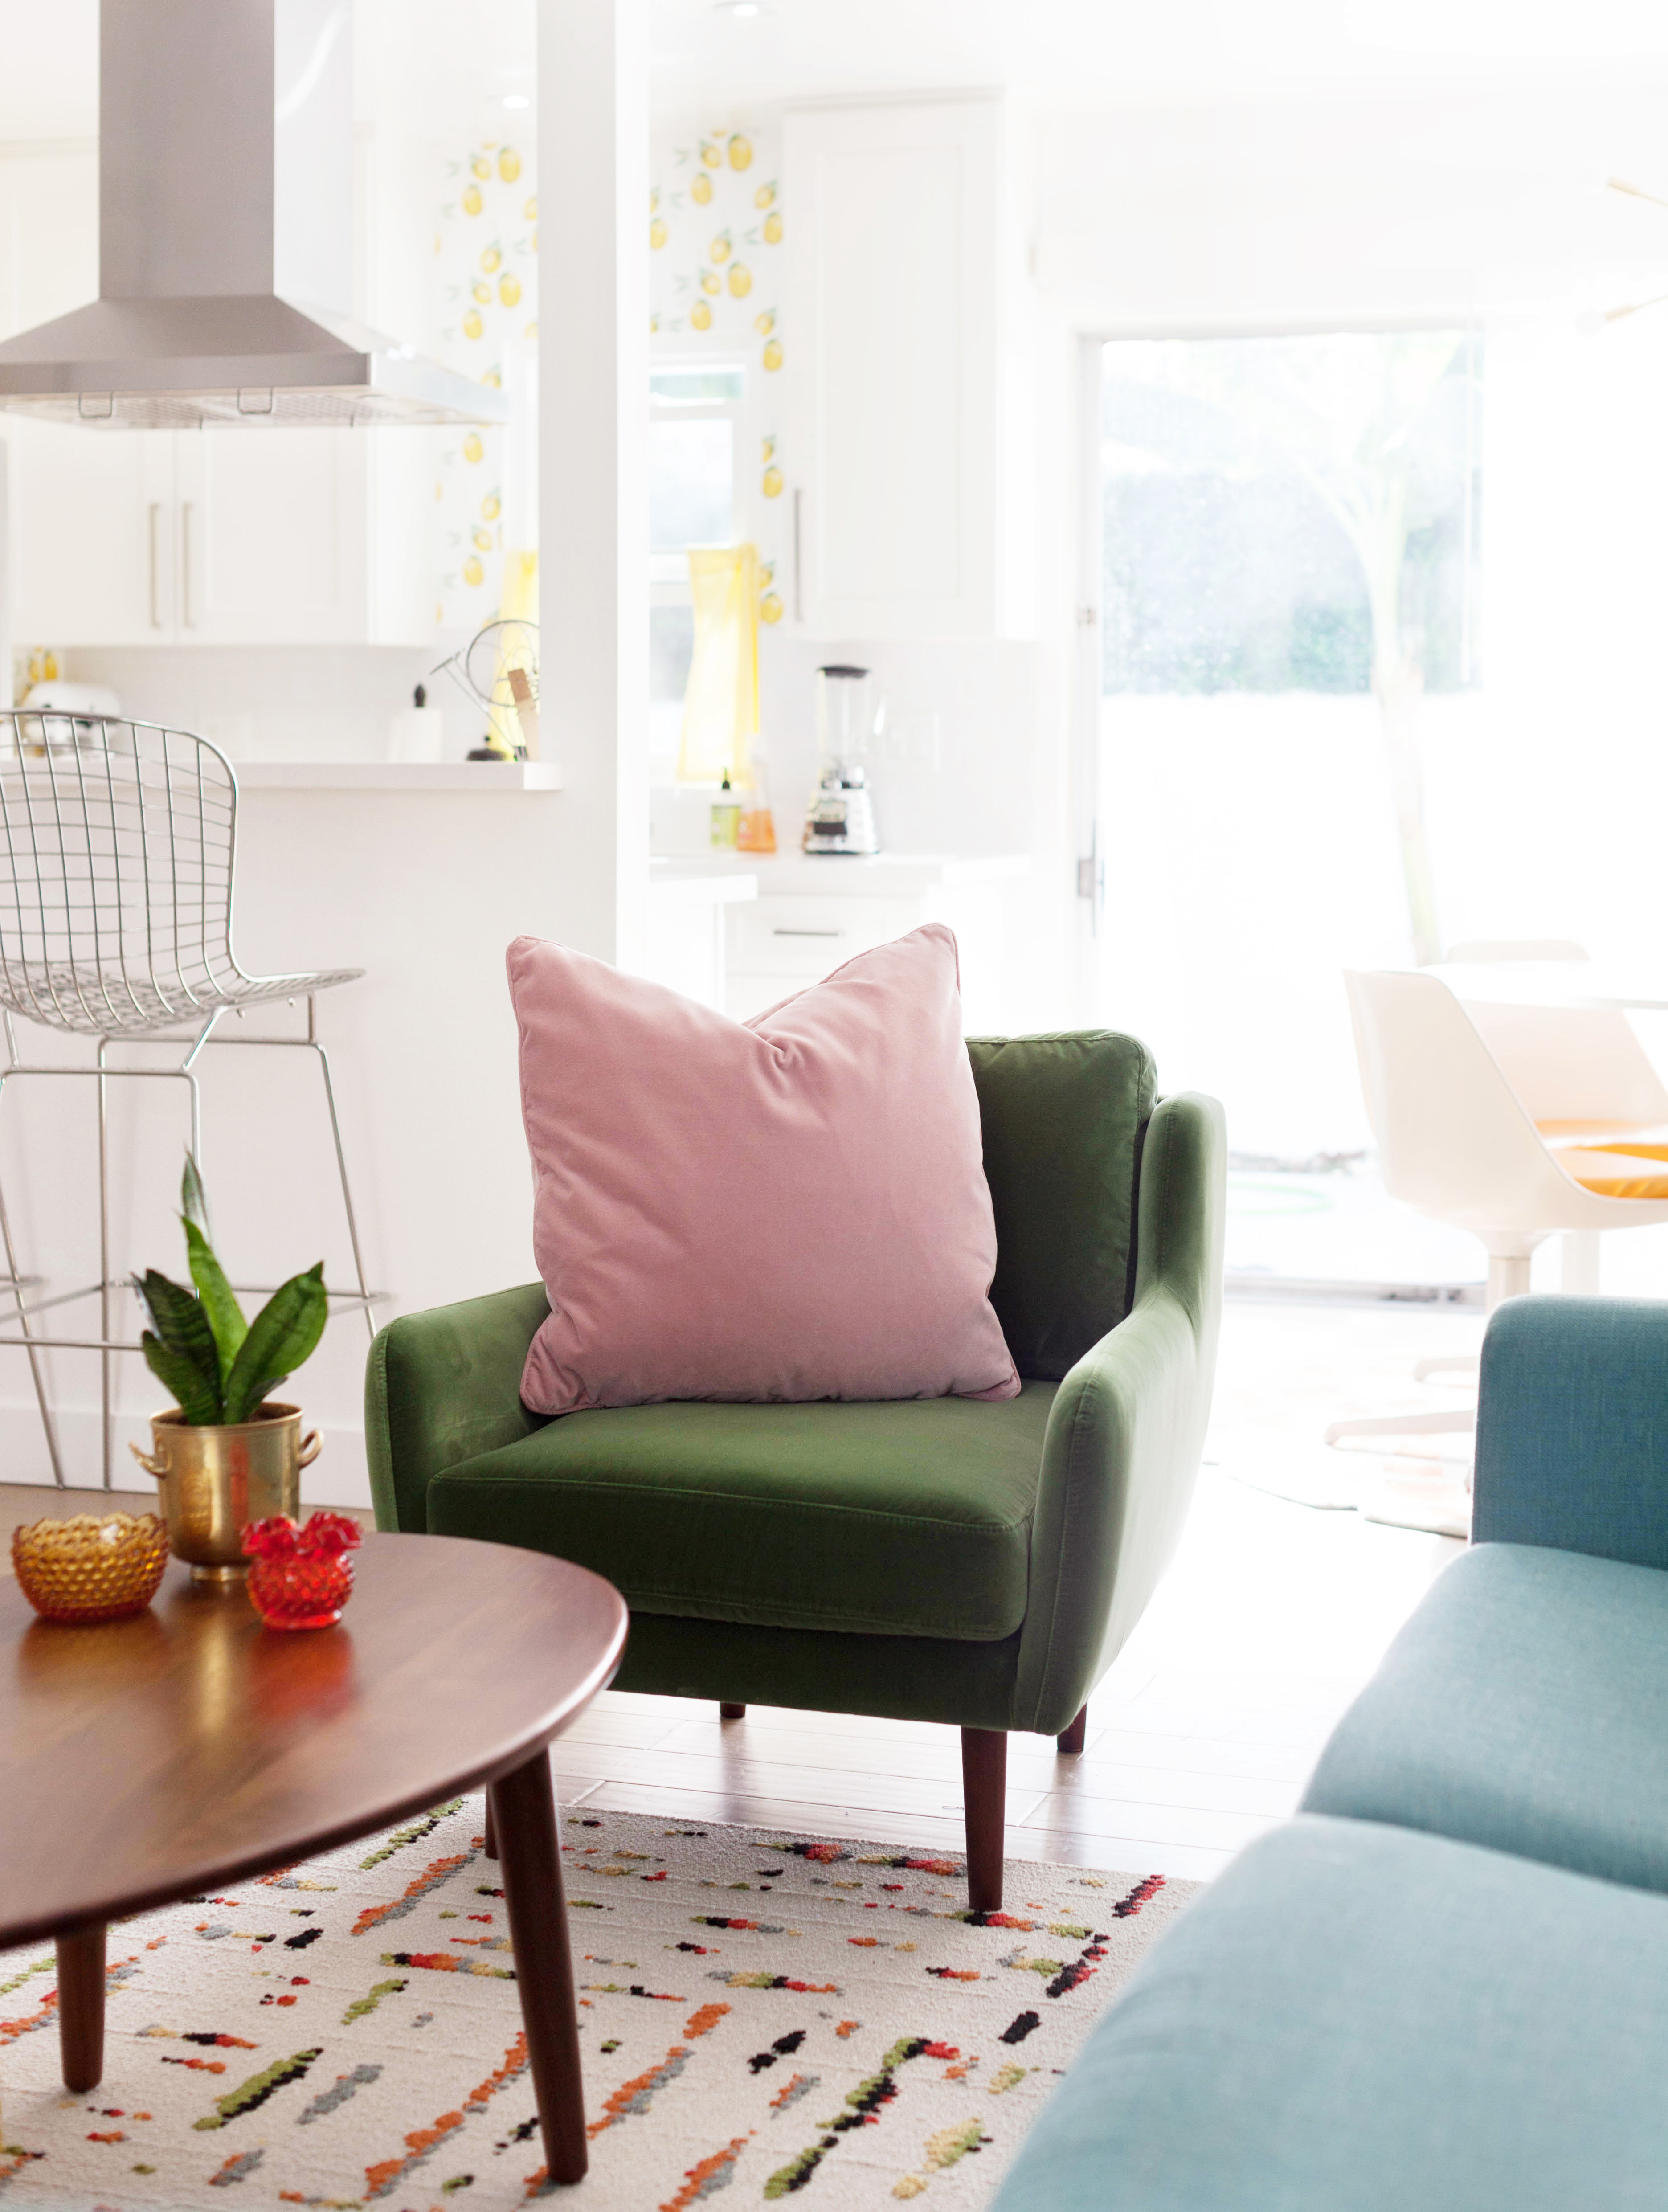 Velvet Matrix Chair From Artcle In Grass Green And Blush Pink